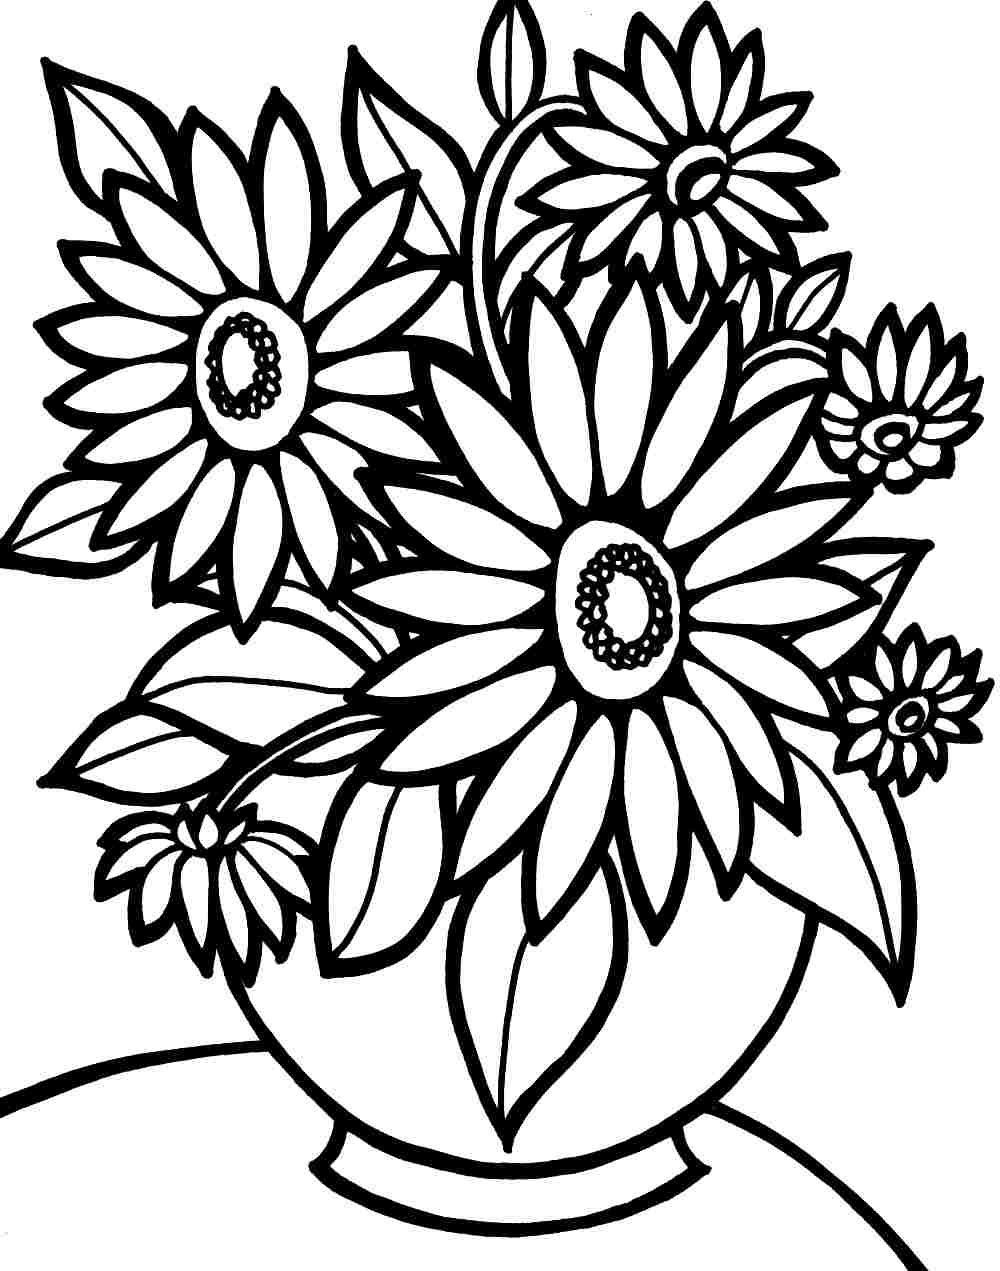 Large Print Coloring Pages For Adults at GetColorings.com